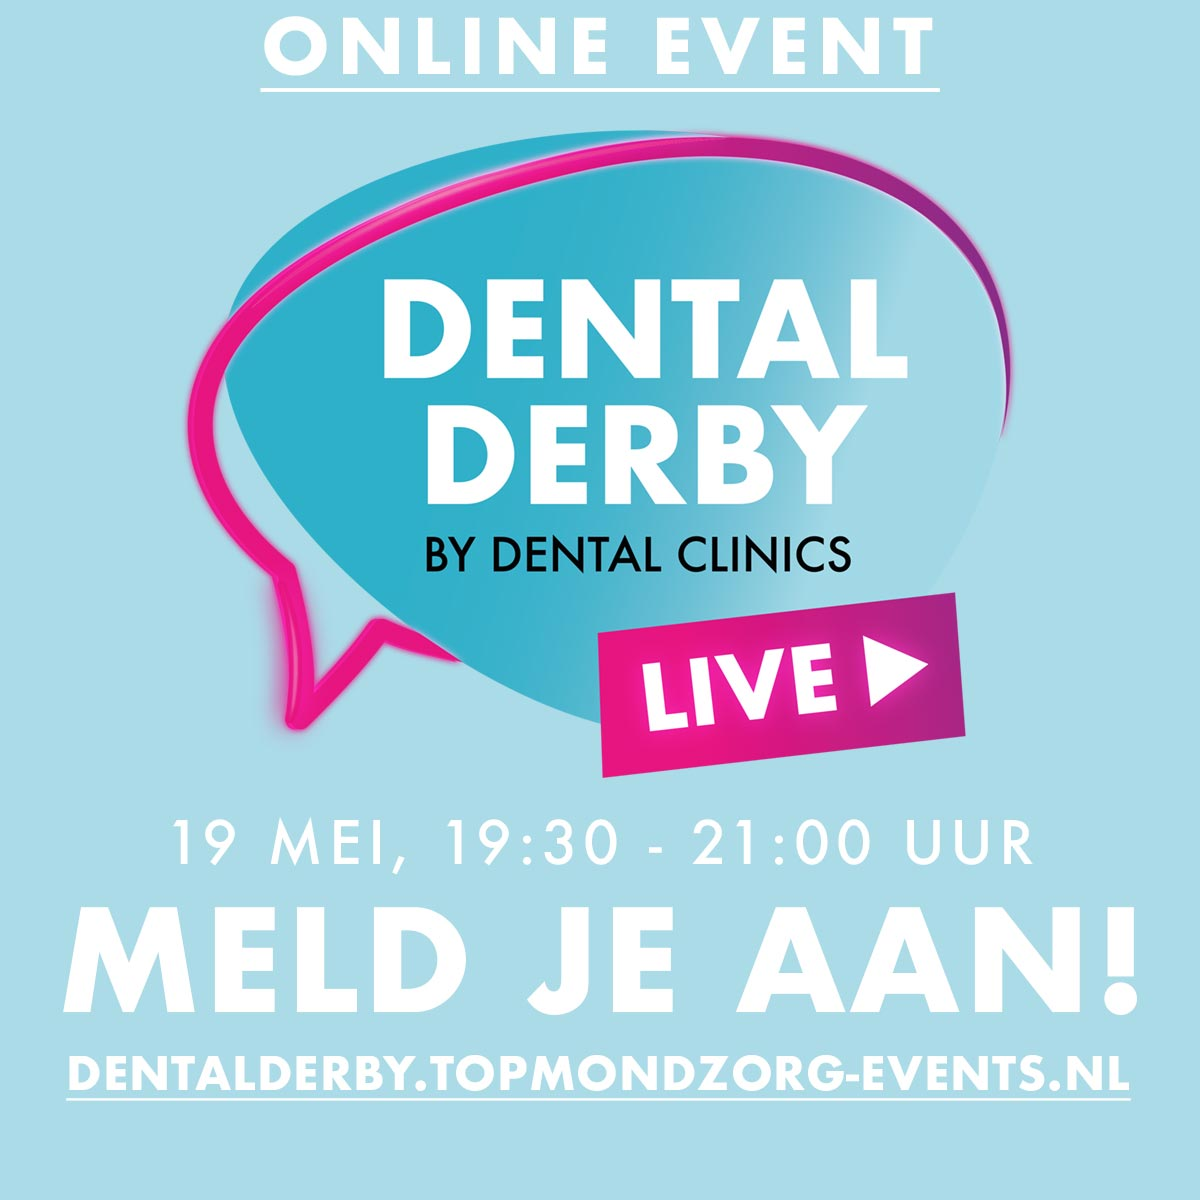 Dental Derby by Dental Clinics